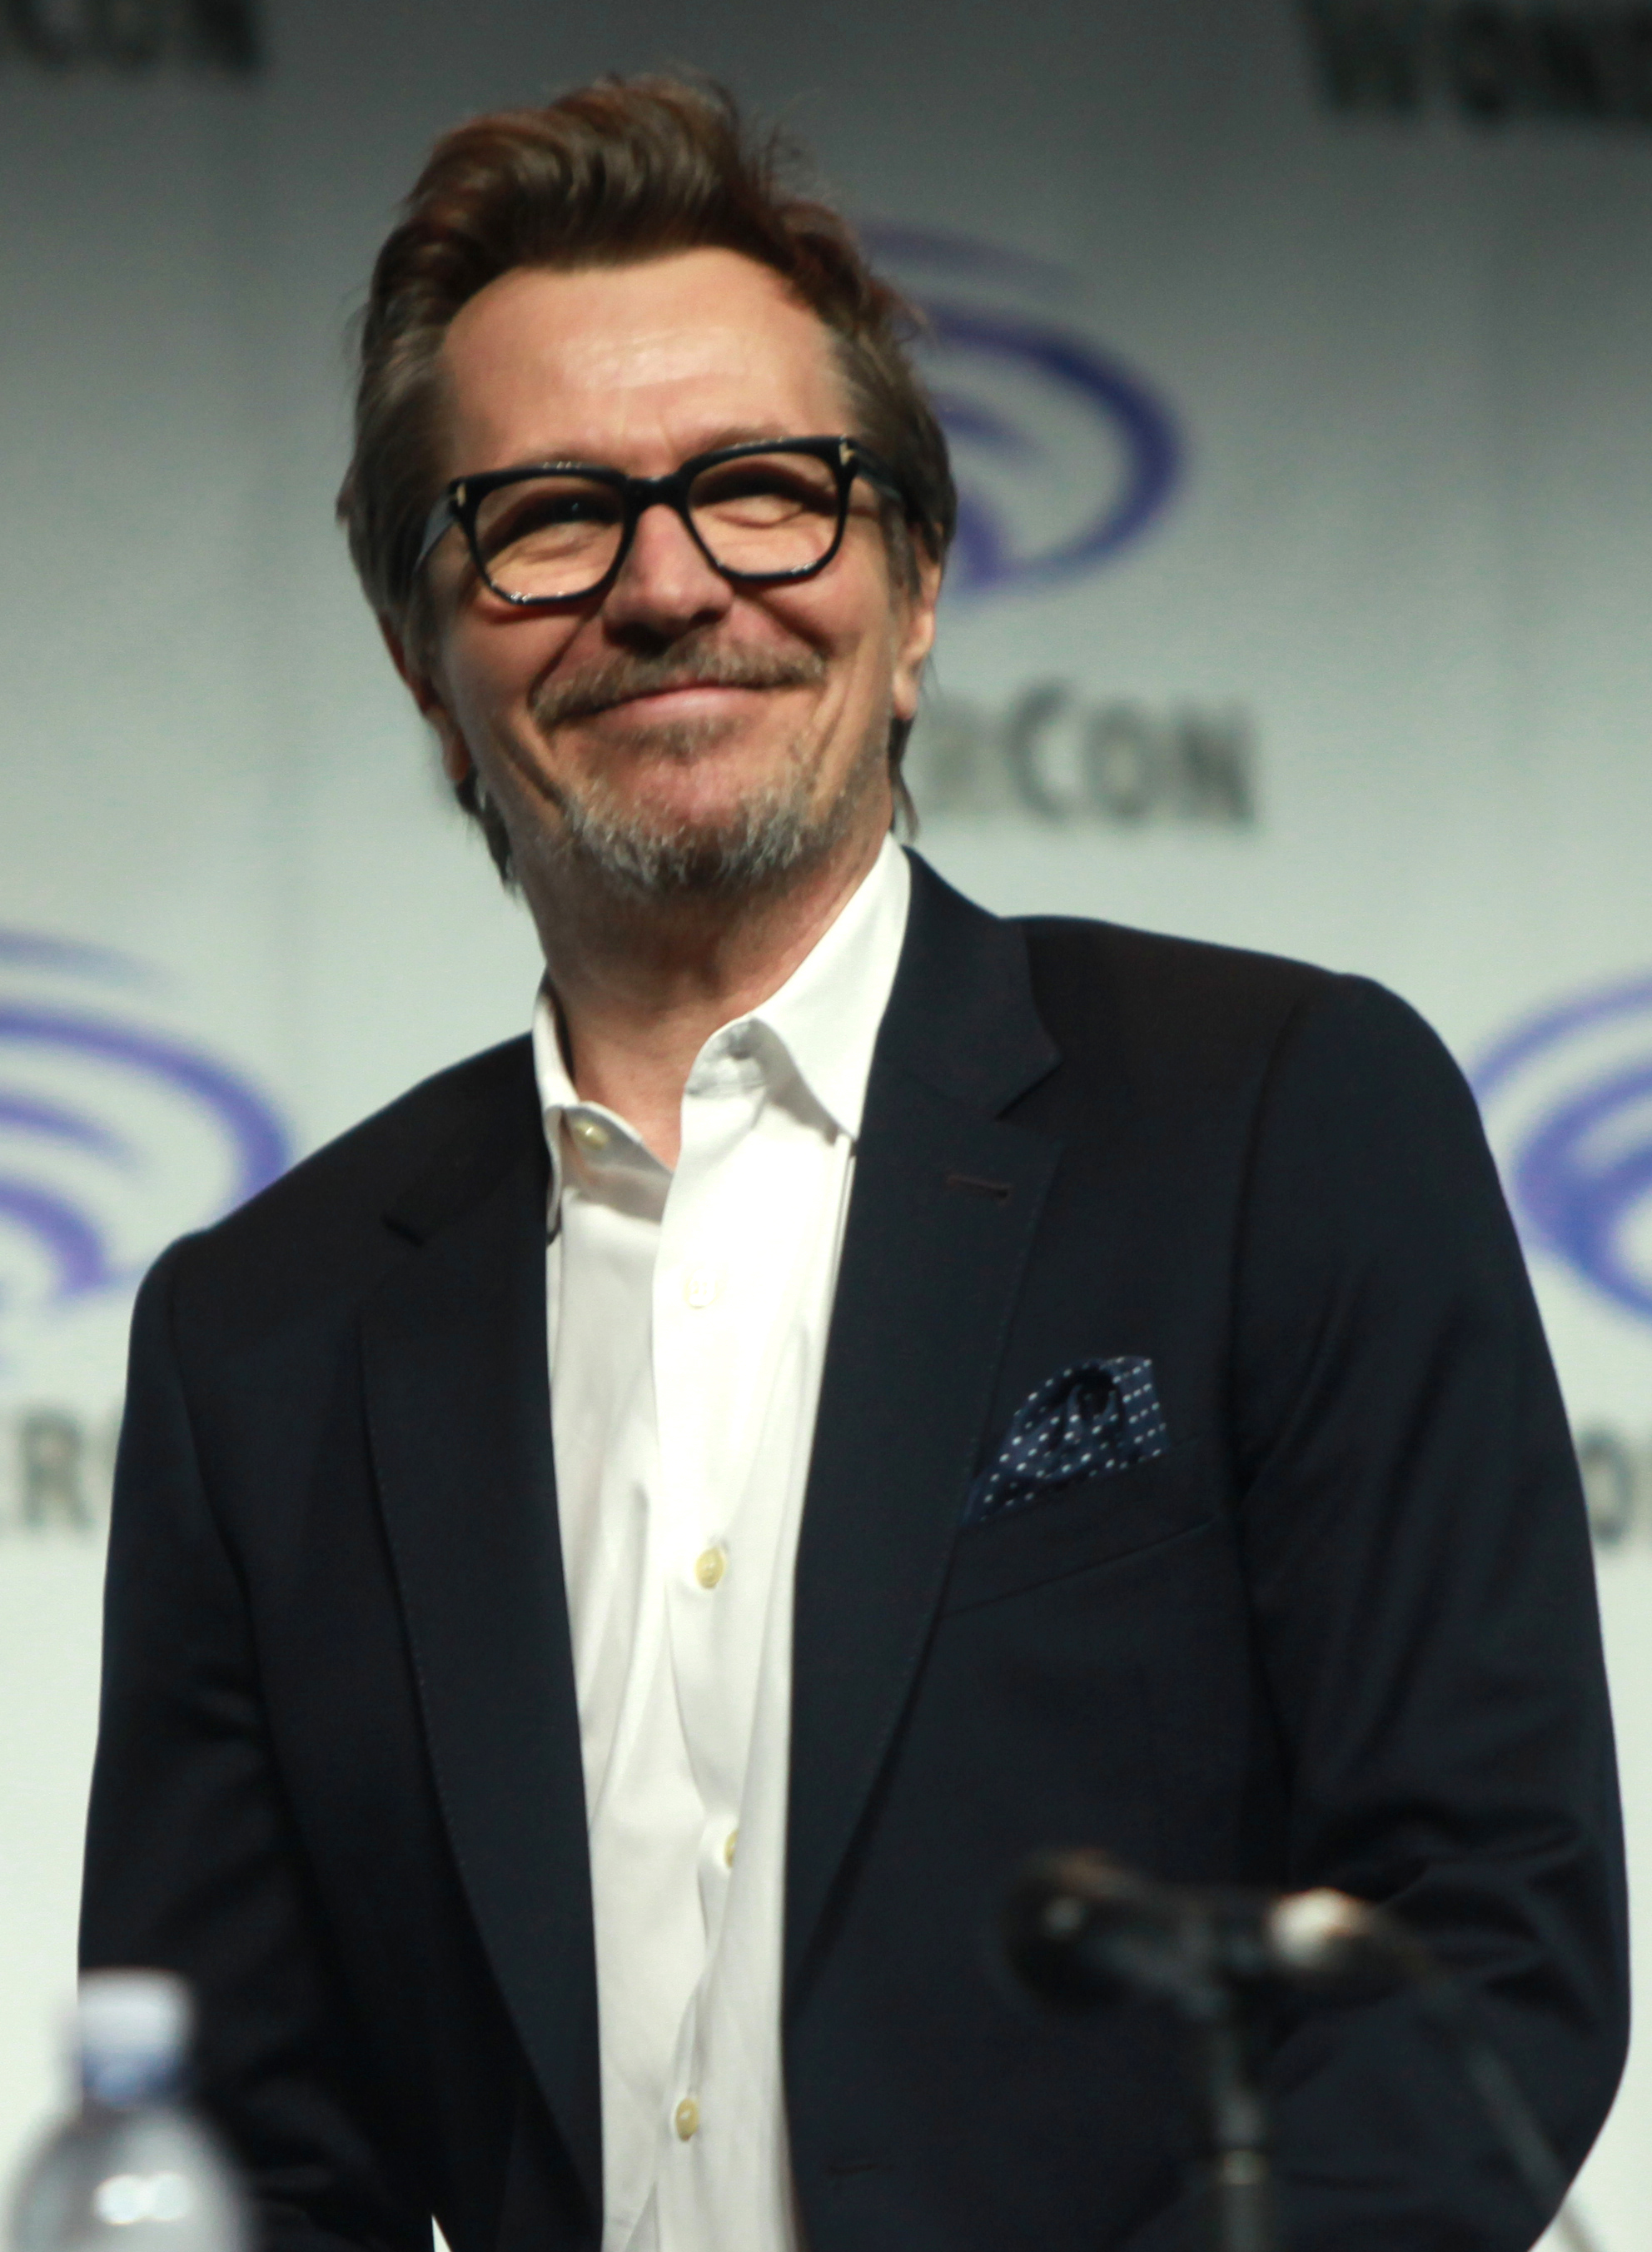 Gary Oldman earned a  million dollar salary, leaving the net worth at 40 million in 2017